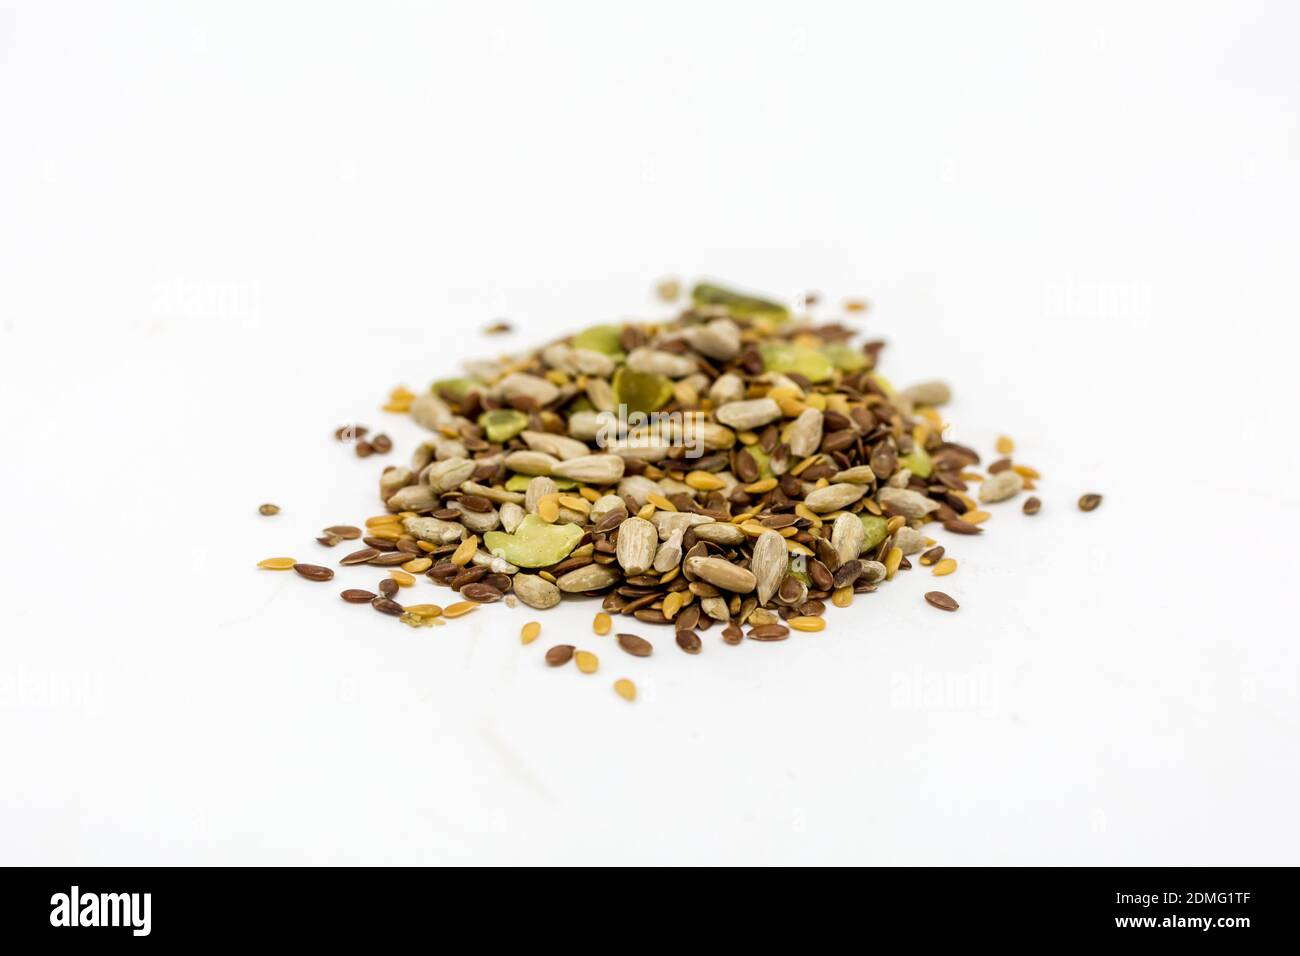 A pile of mixed seeds against a white background Stock Photo